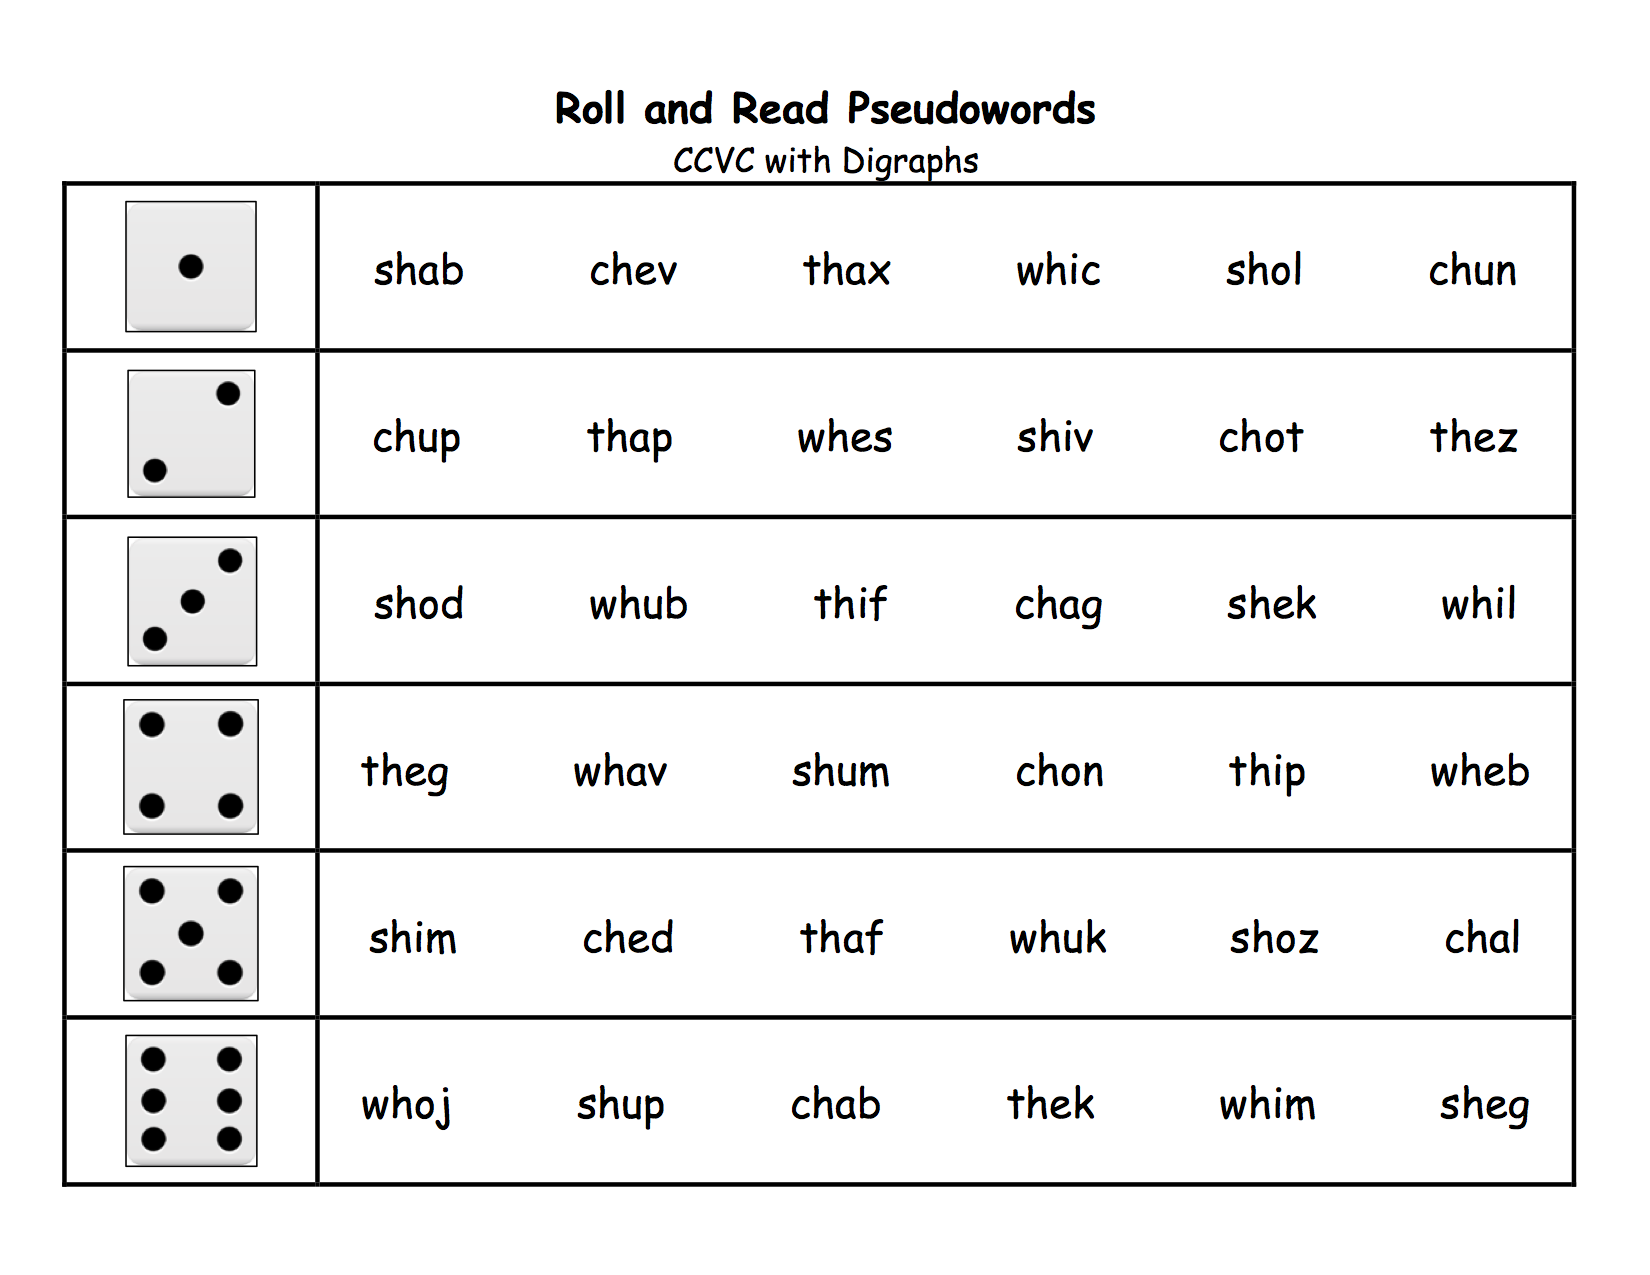 Roll And Read Pseudowords Nonsense Words